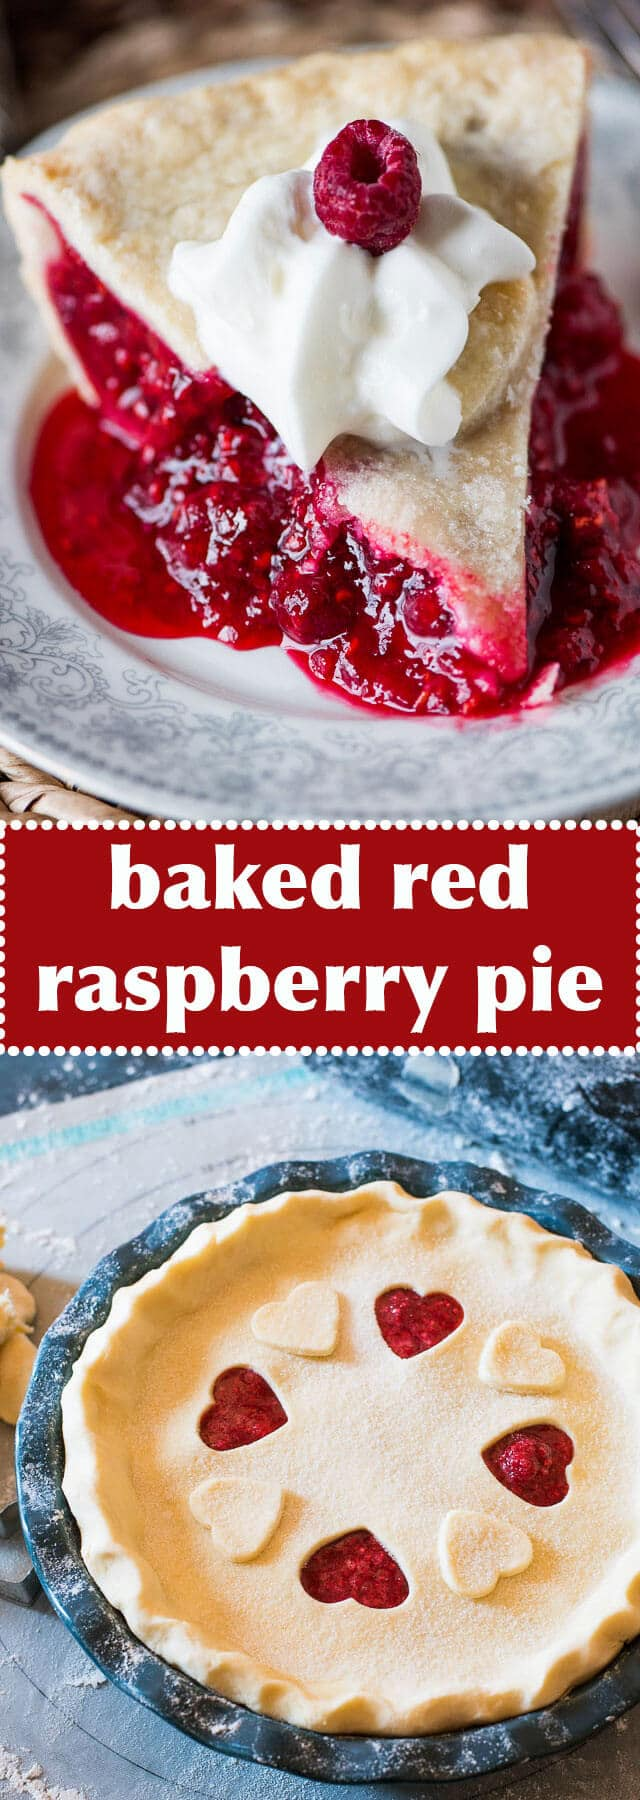 baked red raspberry pie / easy fruit pie / raspberry pie filling / homemade pie crust / double crust raspberry pie / easy raspberry pie